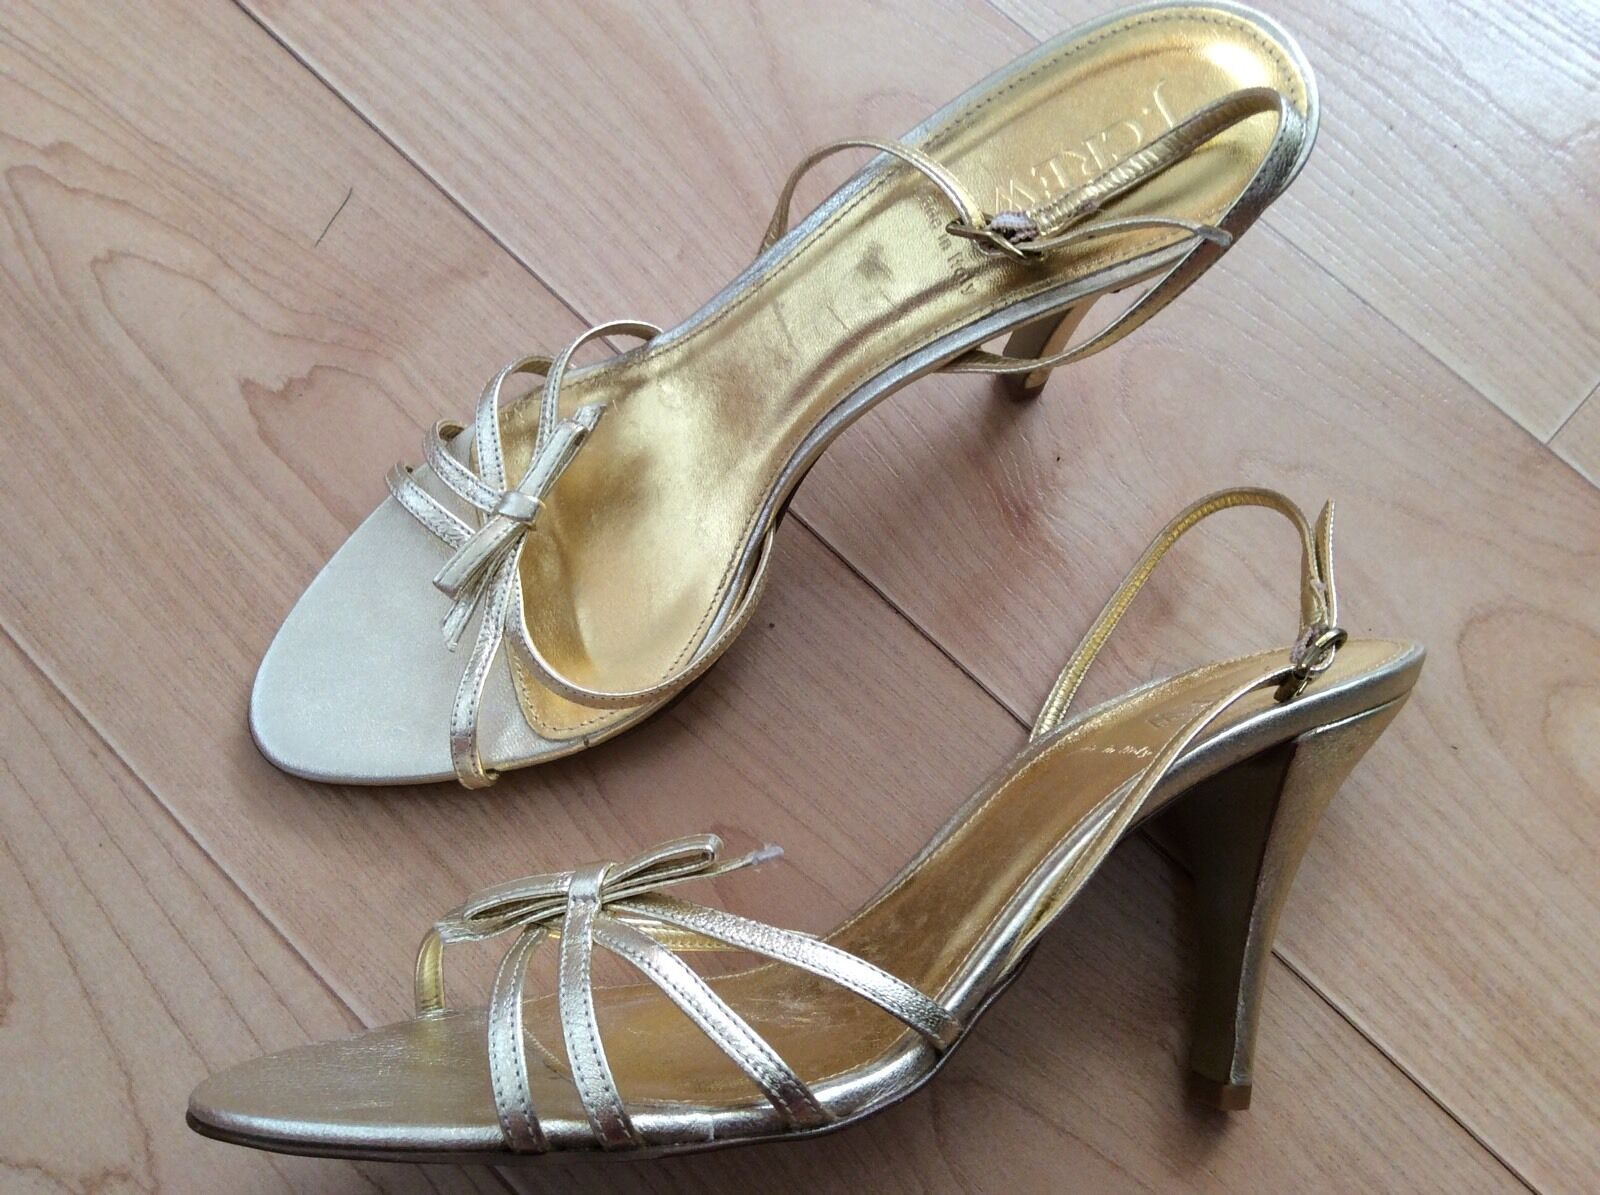 J J J CREW Size 9 Strappy High Heel Sandals Shoes Gold Genuine Pelle Italy NEW c9069e